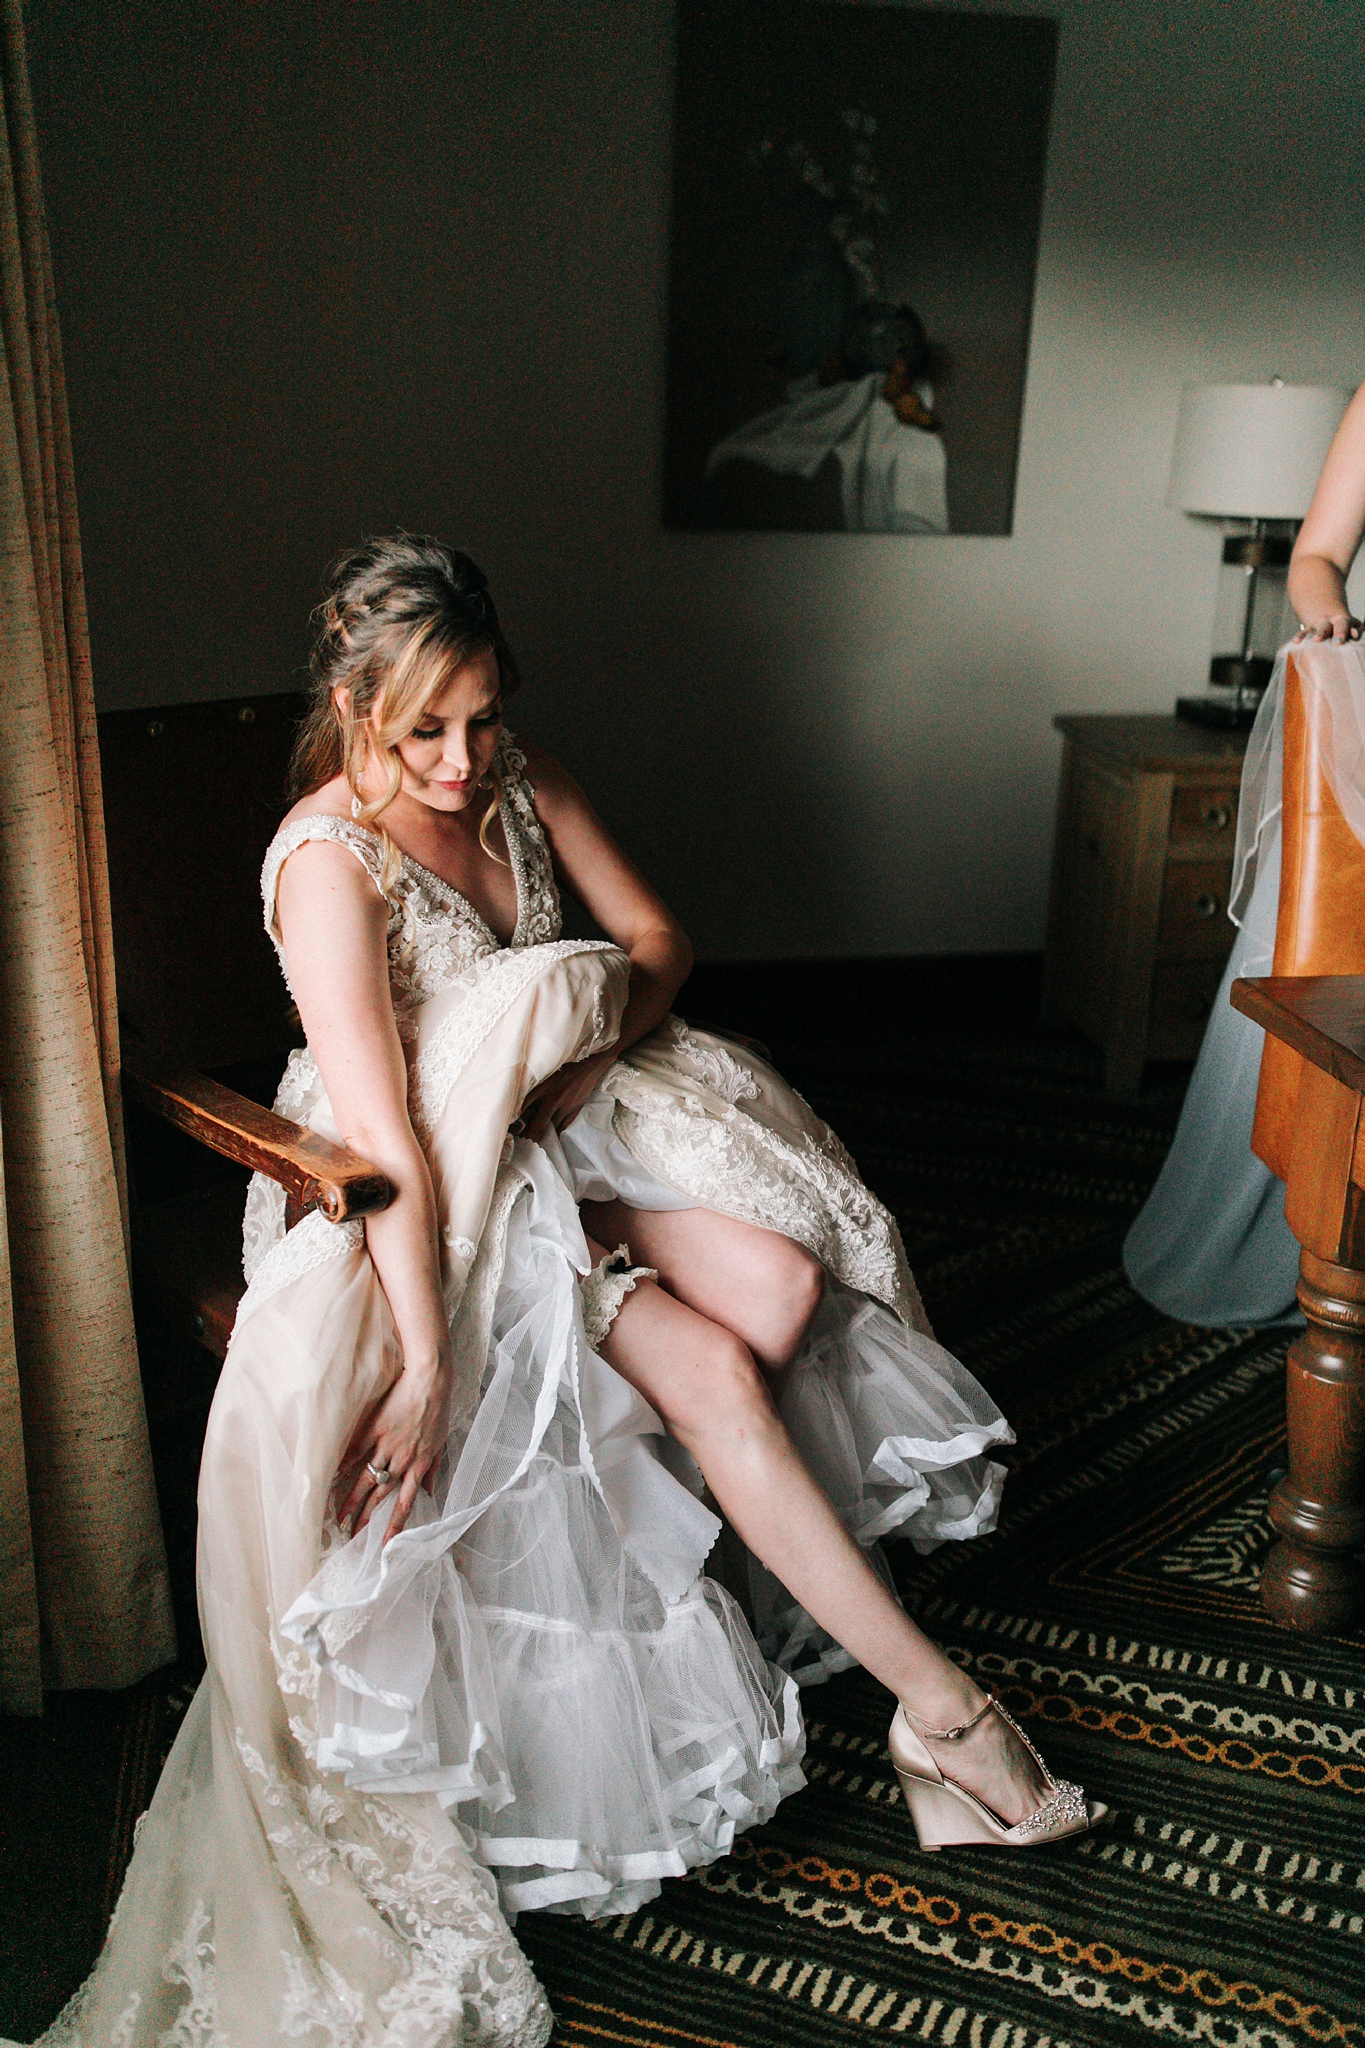 Alicia+lucia+photography+-+albuquerque+wedding+photographer+-+santa+fe+wedding+photography+-+new+mexico+wedding+photographer+-+new+mexico+wedding+-+new+mexico+wedding+-+colorado+wedding+-+bridal+shoes+-+bridal+inspo_0016.jpg